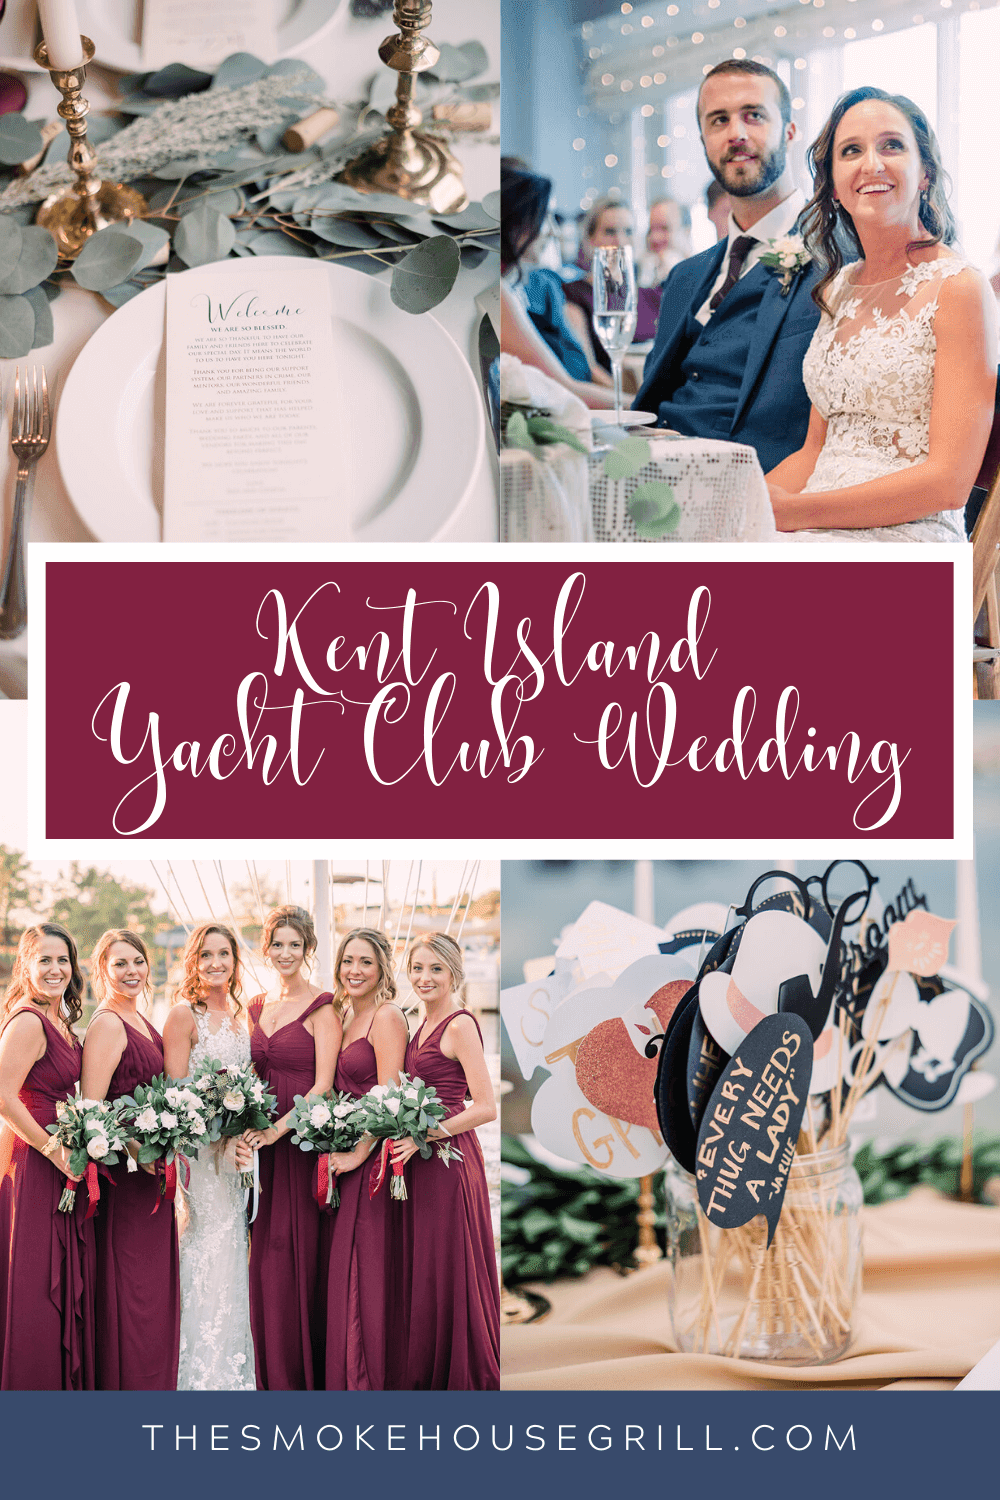 Kent Island Yacht Club Wedding